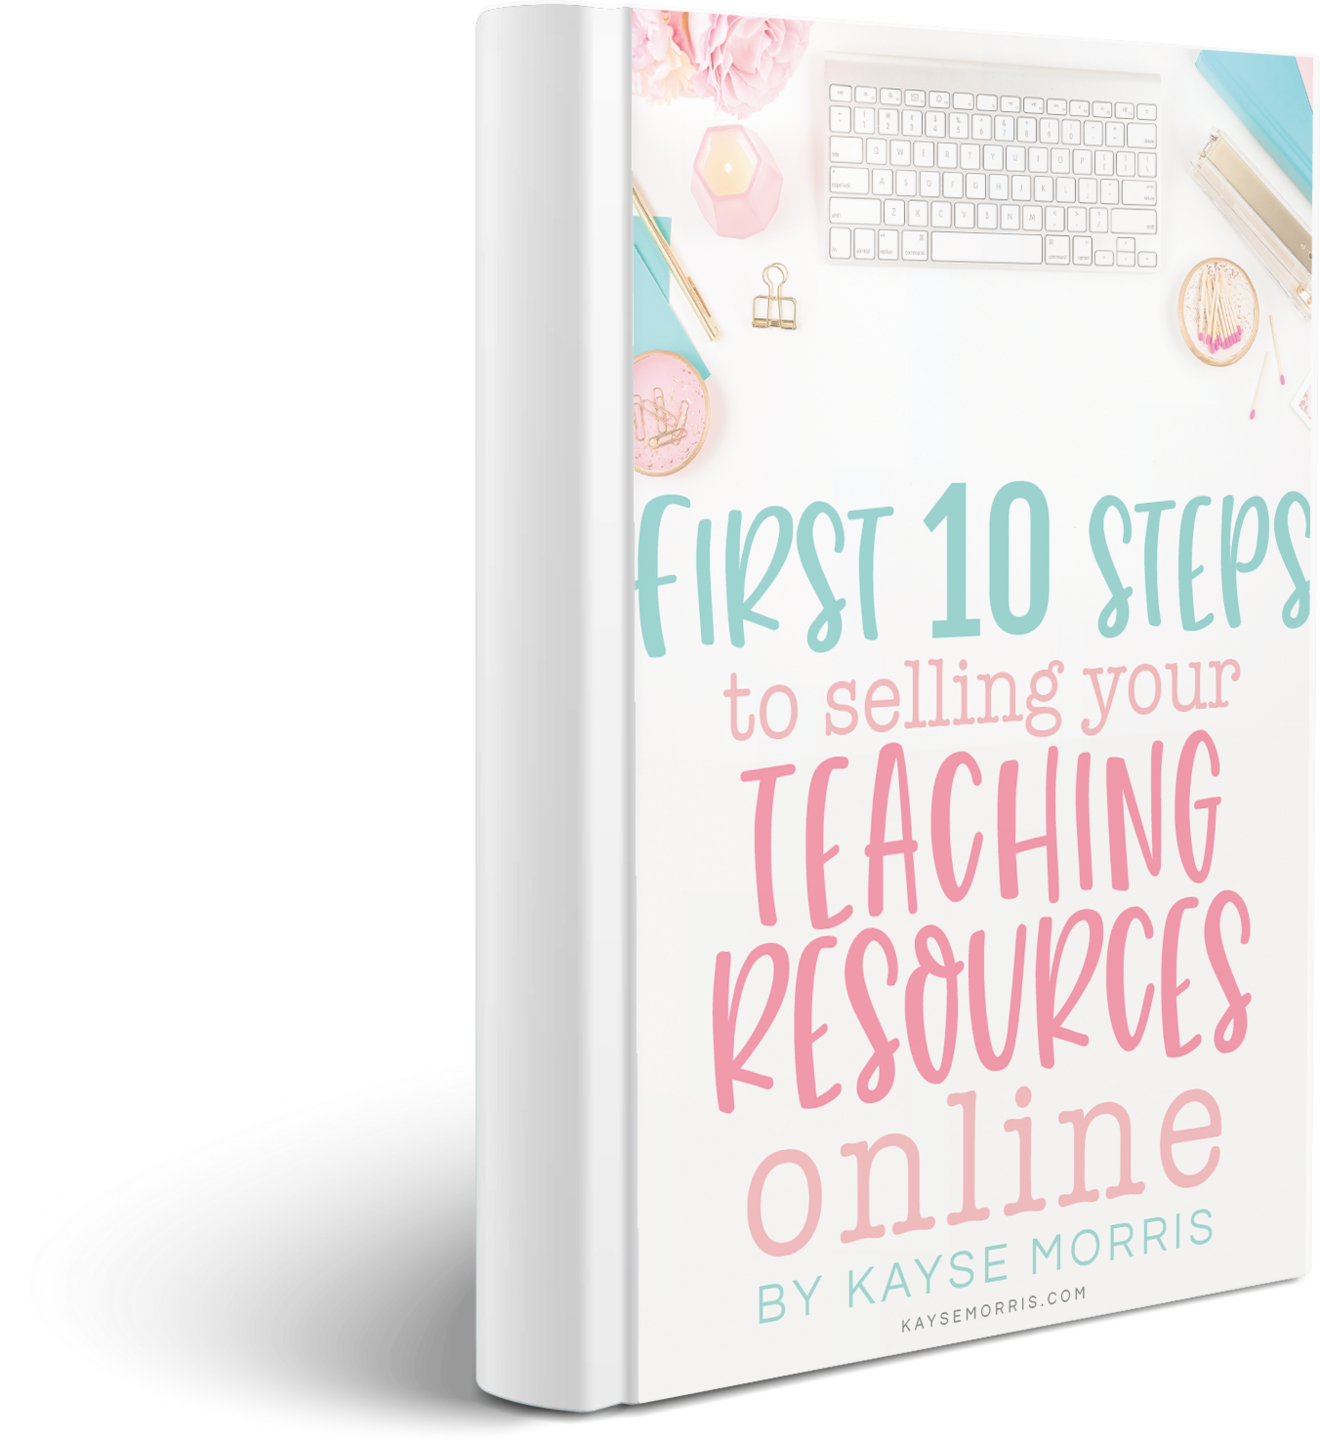 sell-your-teaching-resources-online